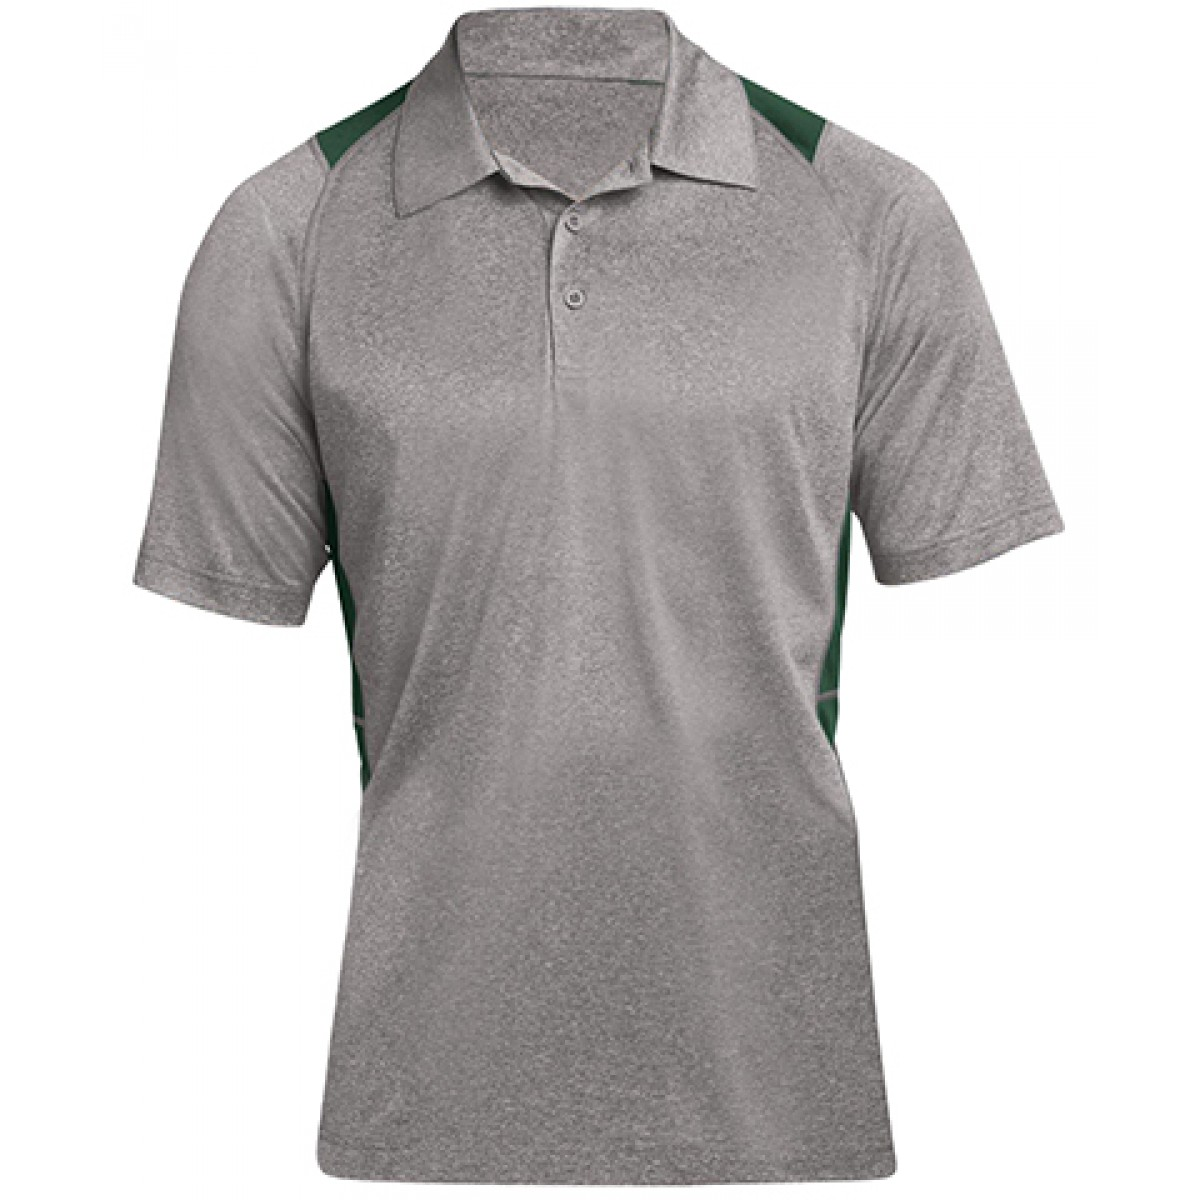 Heather Colorblock Contender Polo-Gray/Green-3XL